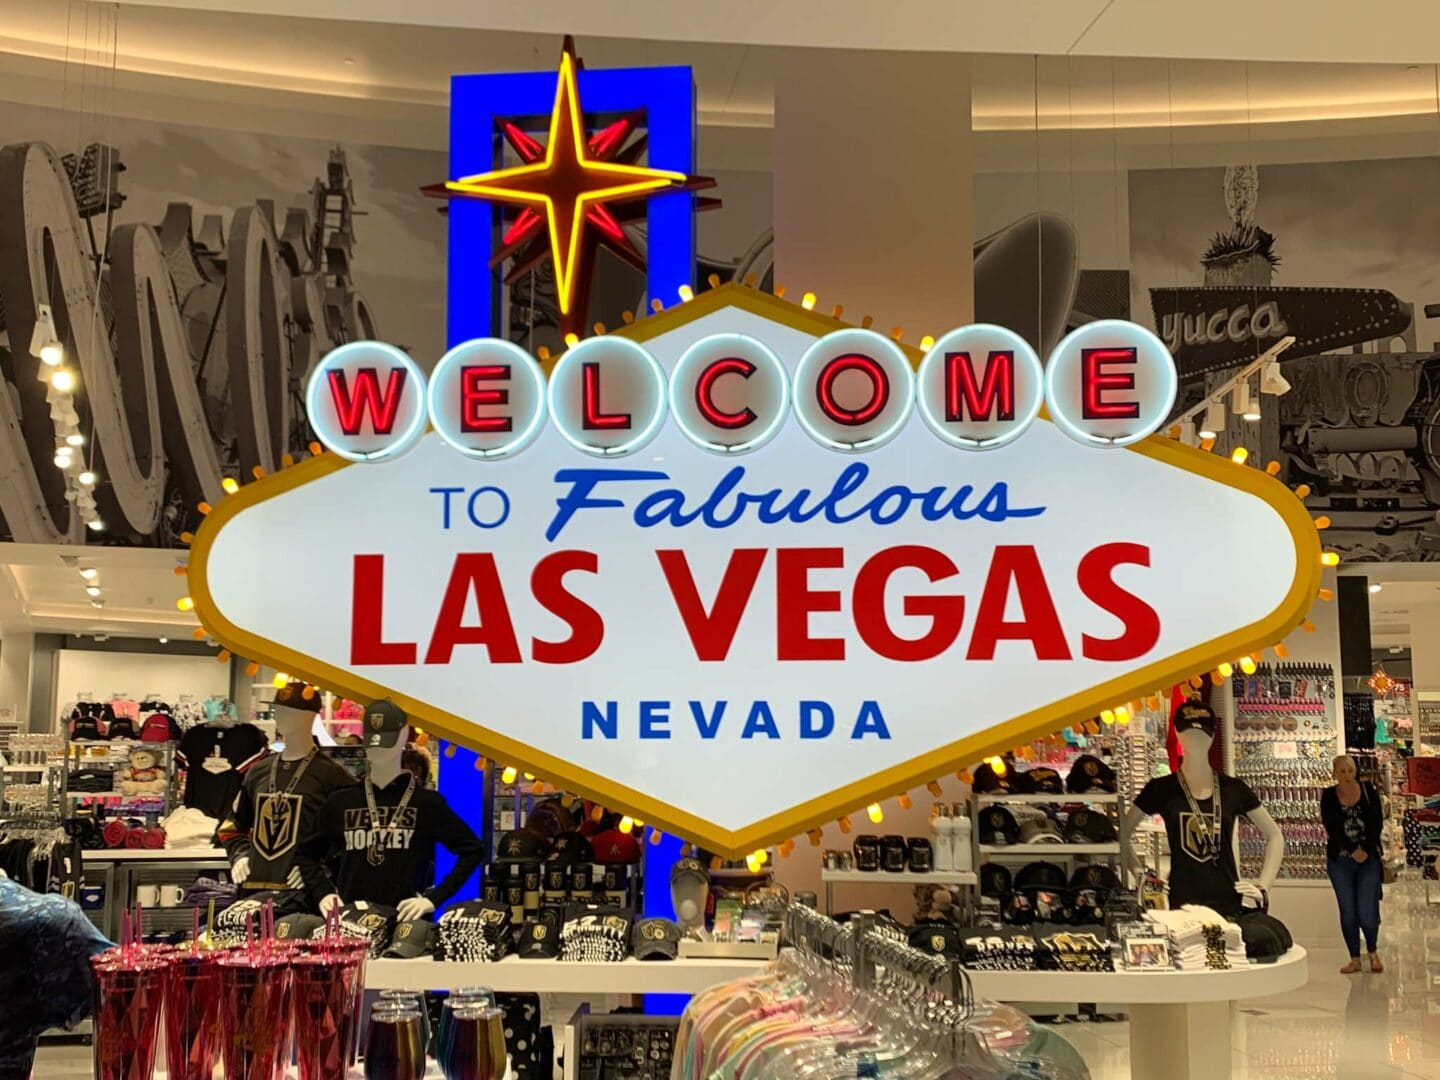 Las Vegas is a great place for shopping.